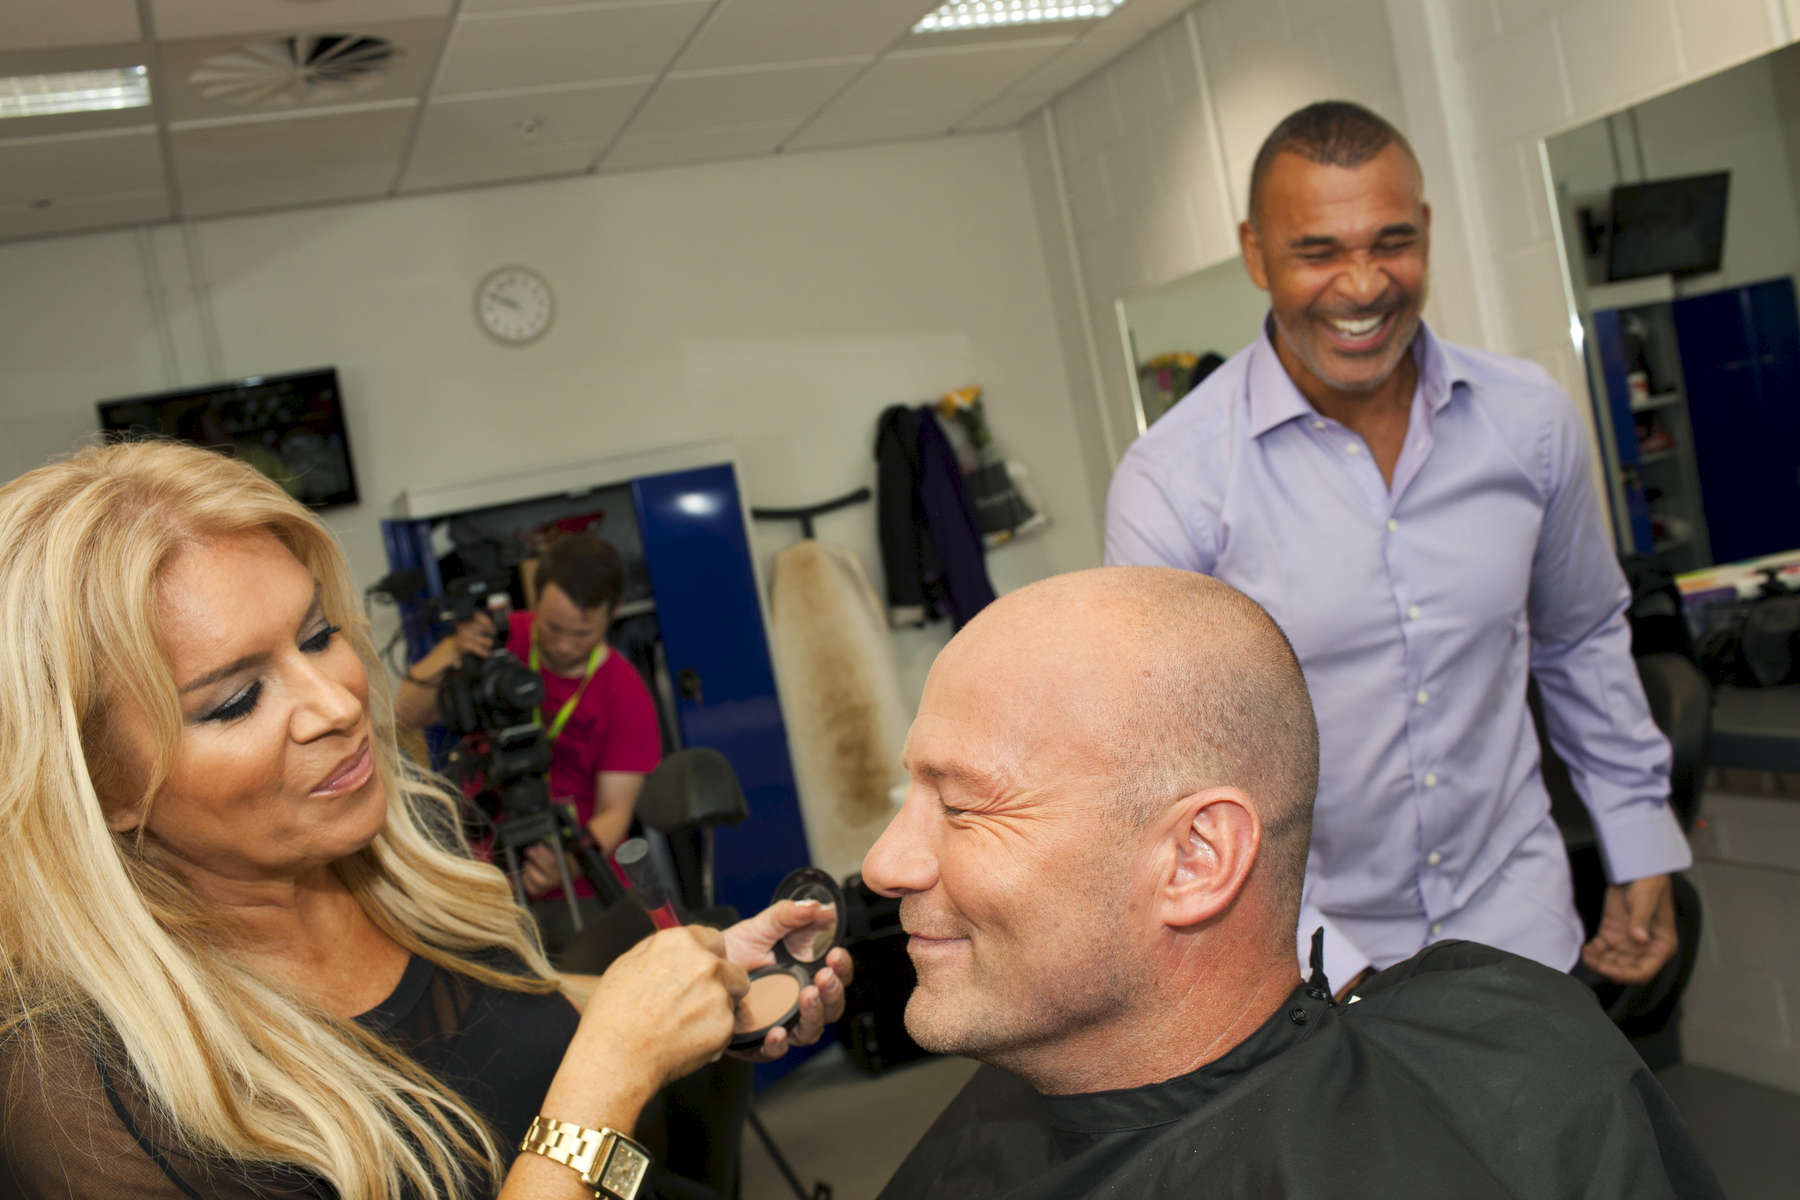 MOTD pundit Alan Shearer has make up applied before Saturdays live show.Match of the Day (often abbreviated as MOTD or MotD) is the BBC\'s main football television programme. Typically, it is shown on BBC One on Saturday evenings during the English football season, showing highlights of the day\'s matches in English football\'s top division, the Premier League. It is one of the BBC\'s longest-running shows, having been on air since 22 August 1964, though it has not always been aired regularly. The programme is broadcast from MediaCityUK in Salford Quays on the banks of the Manchester Ship Canal in Greater Manchester.Since 1999 MOTD has been presented by the former England captain Gary Lineker. Lineker is usually joined by two pundits to analyse and review the day\'s action. The former Newcastle United captain Alan Shearer is the lead pundit